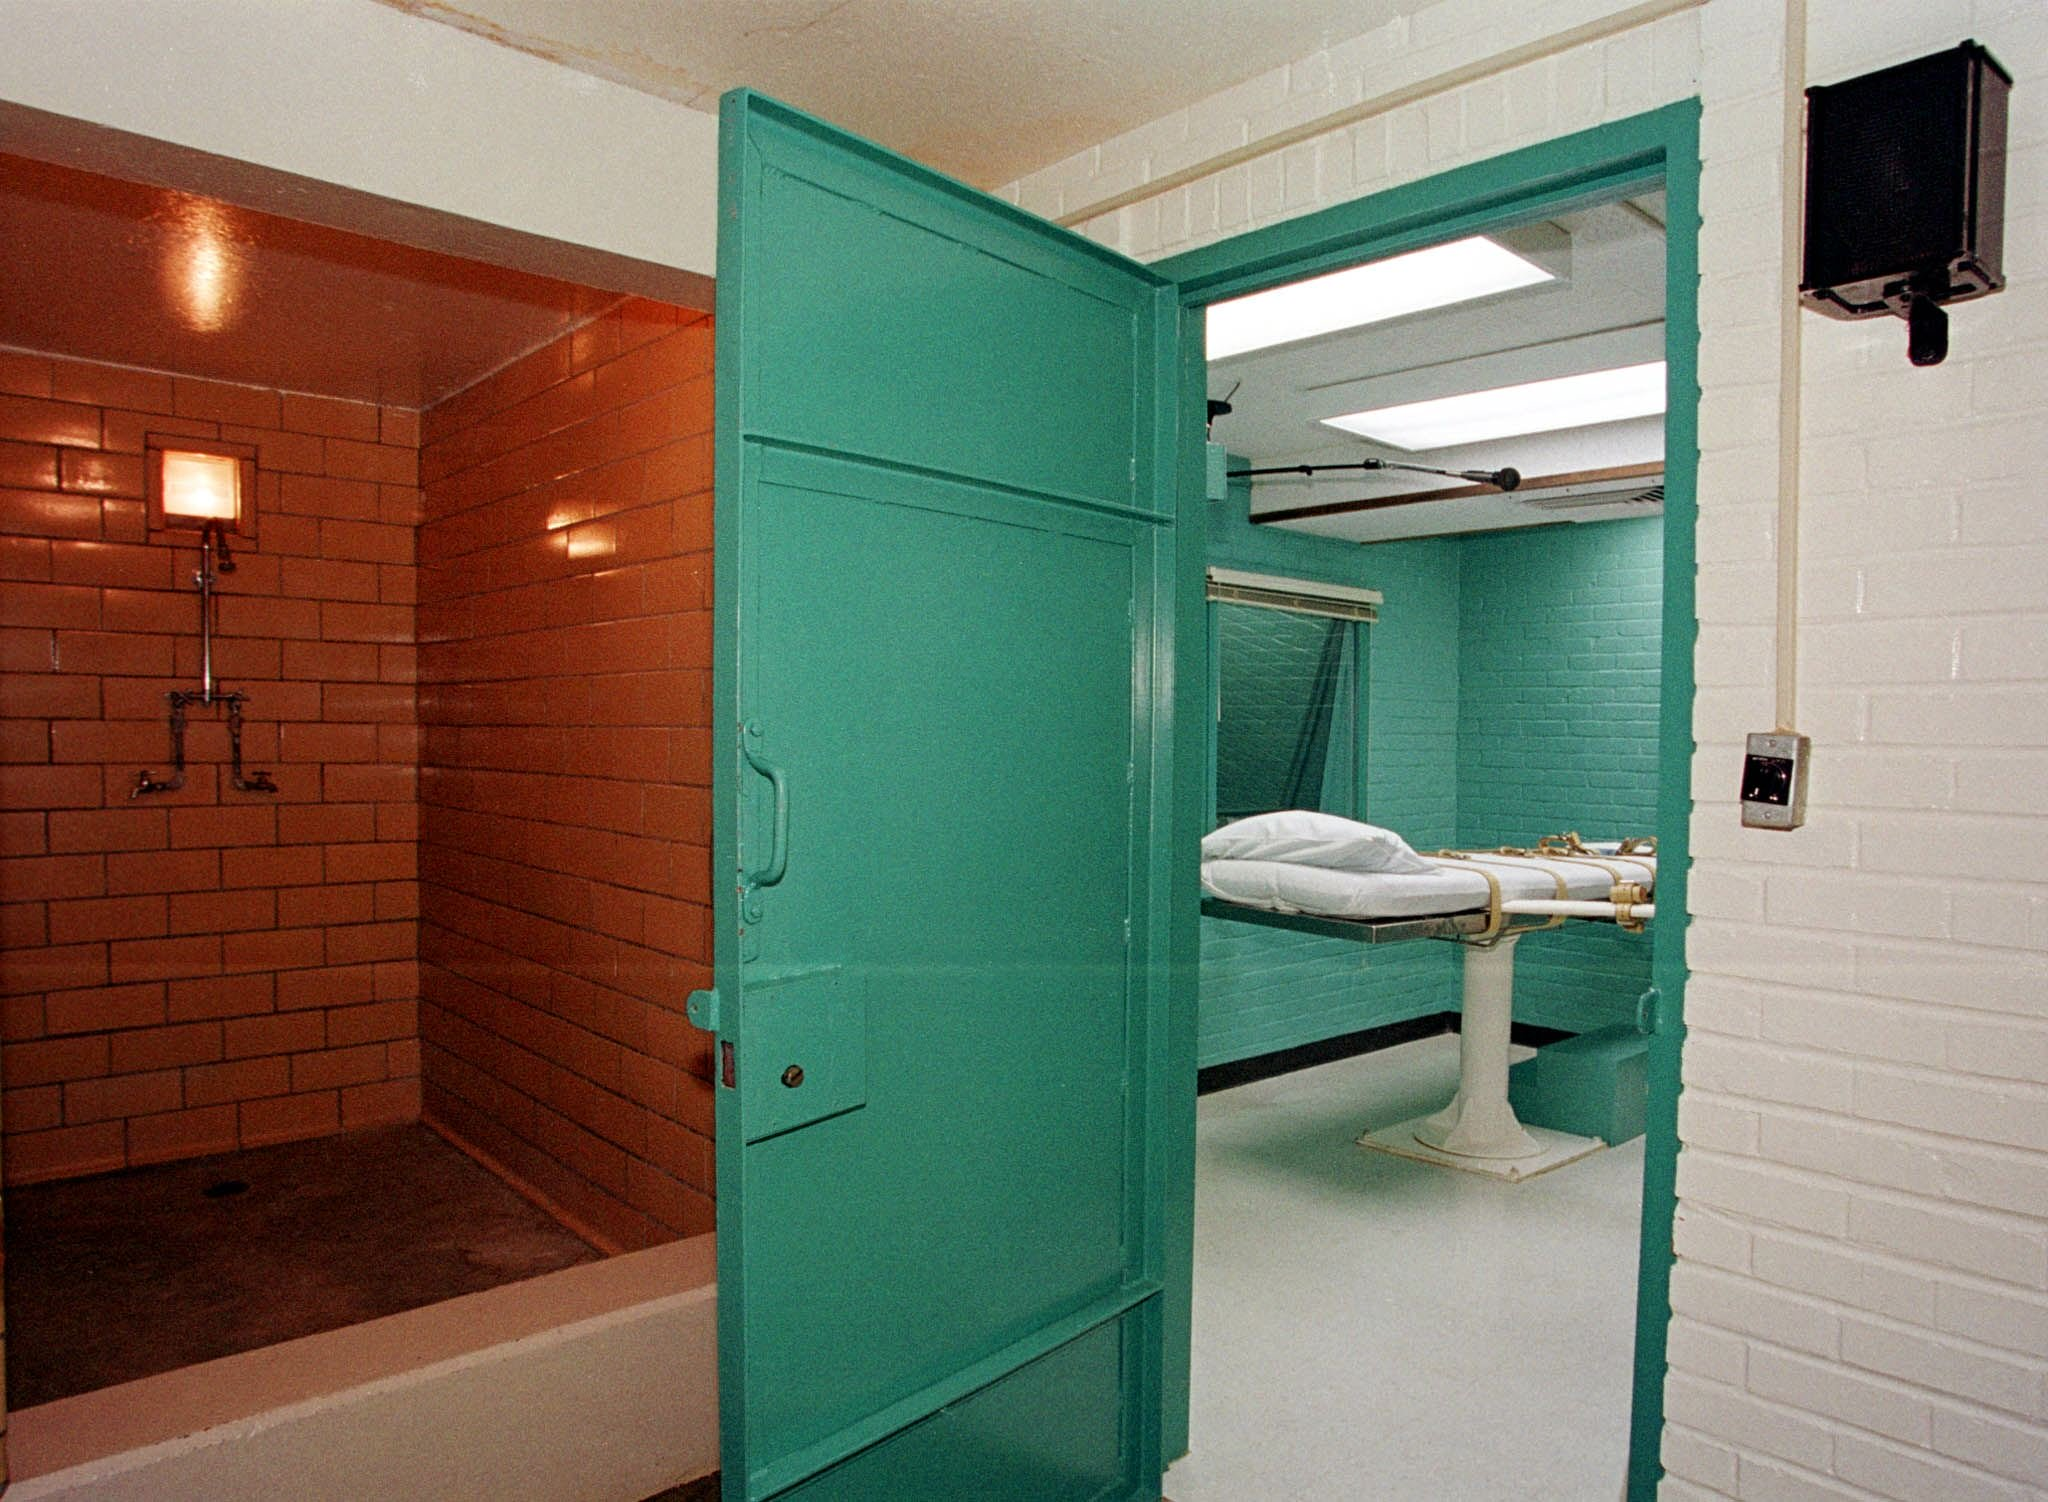 The death chamber at the Texas Department of Criminal Justice in Huntsville, Texas. strapped down to the gurney. (Paul Buck/AFP/Getty Images)